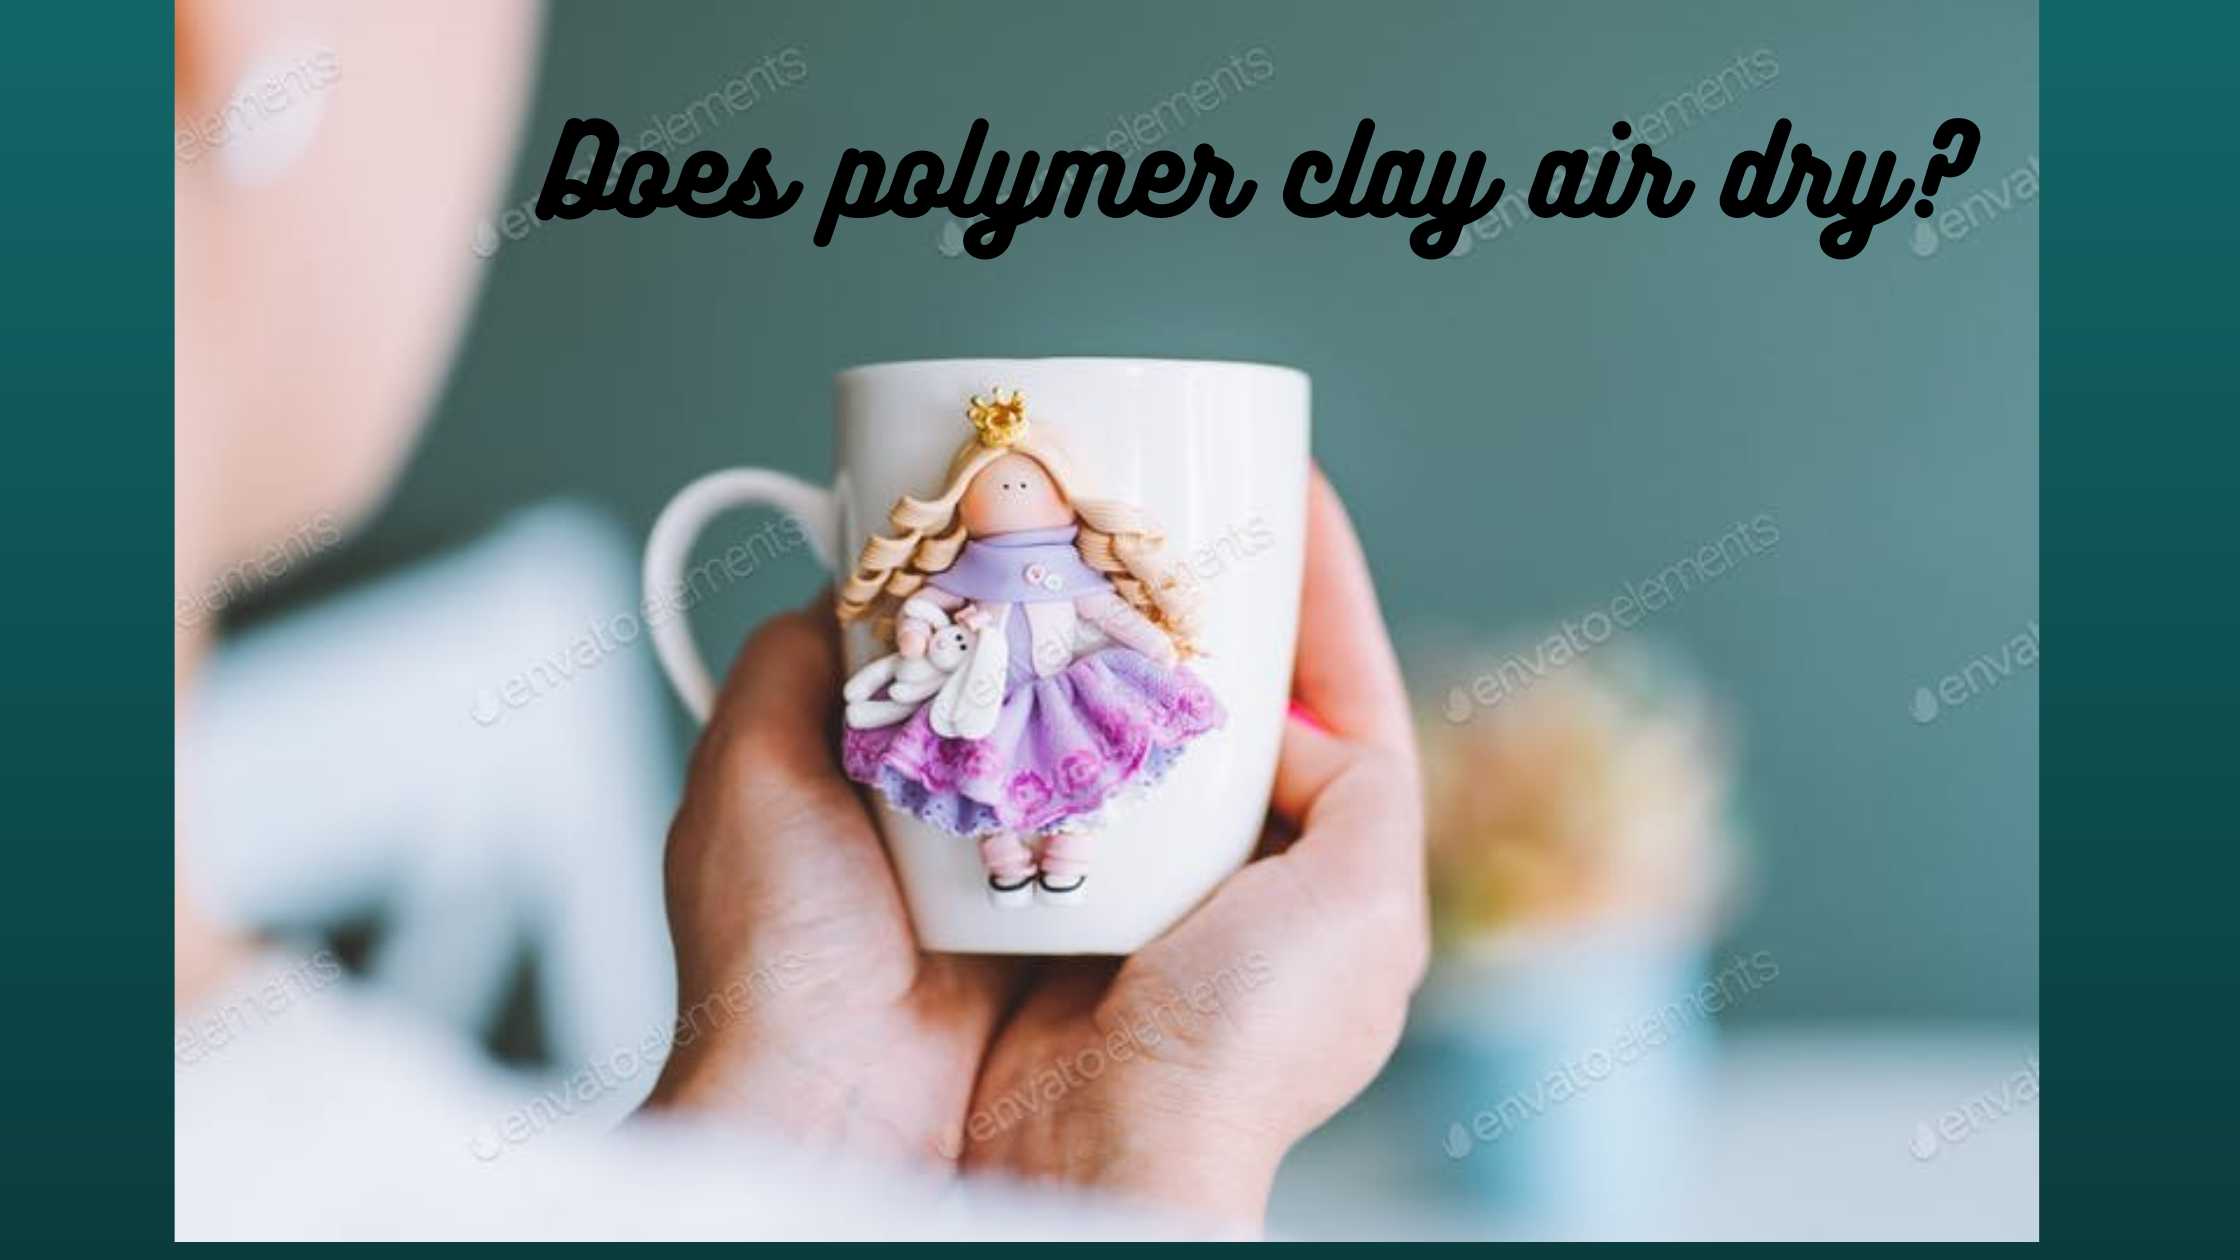 does polymer clay air dry